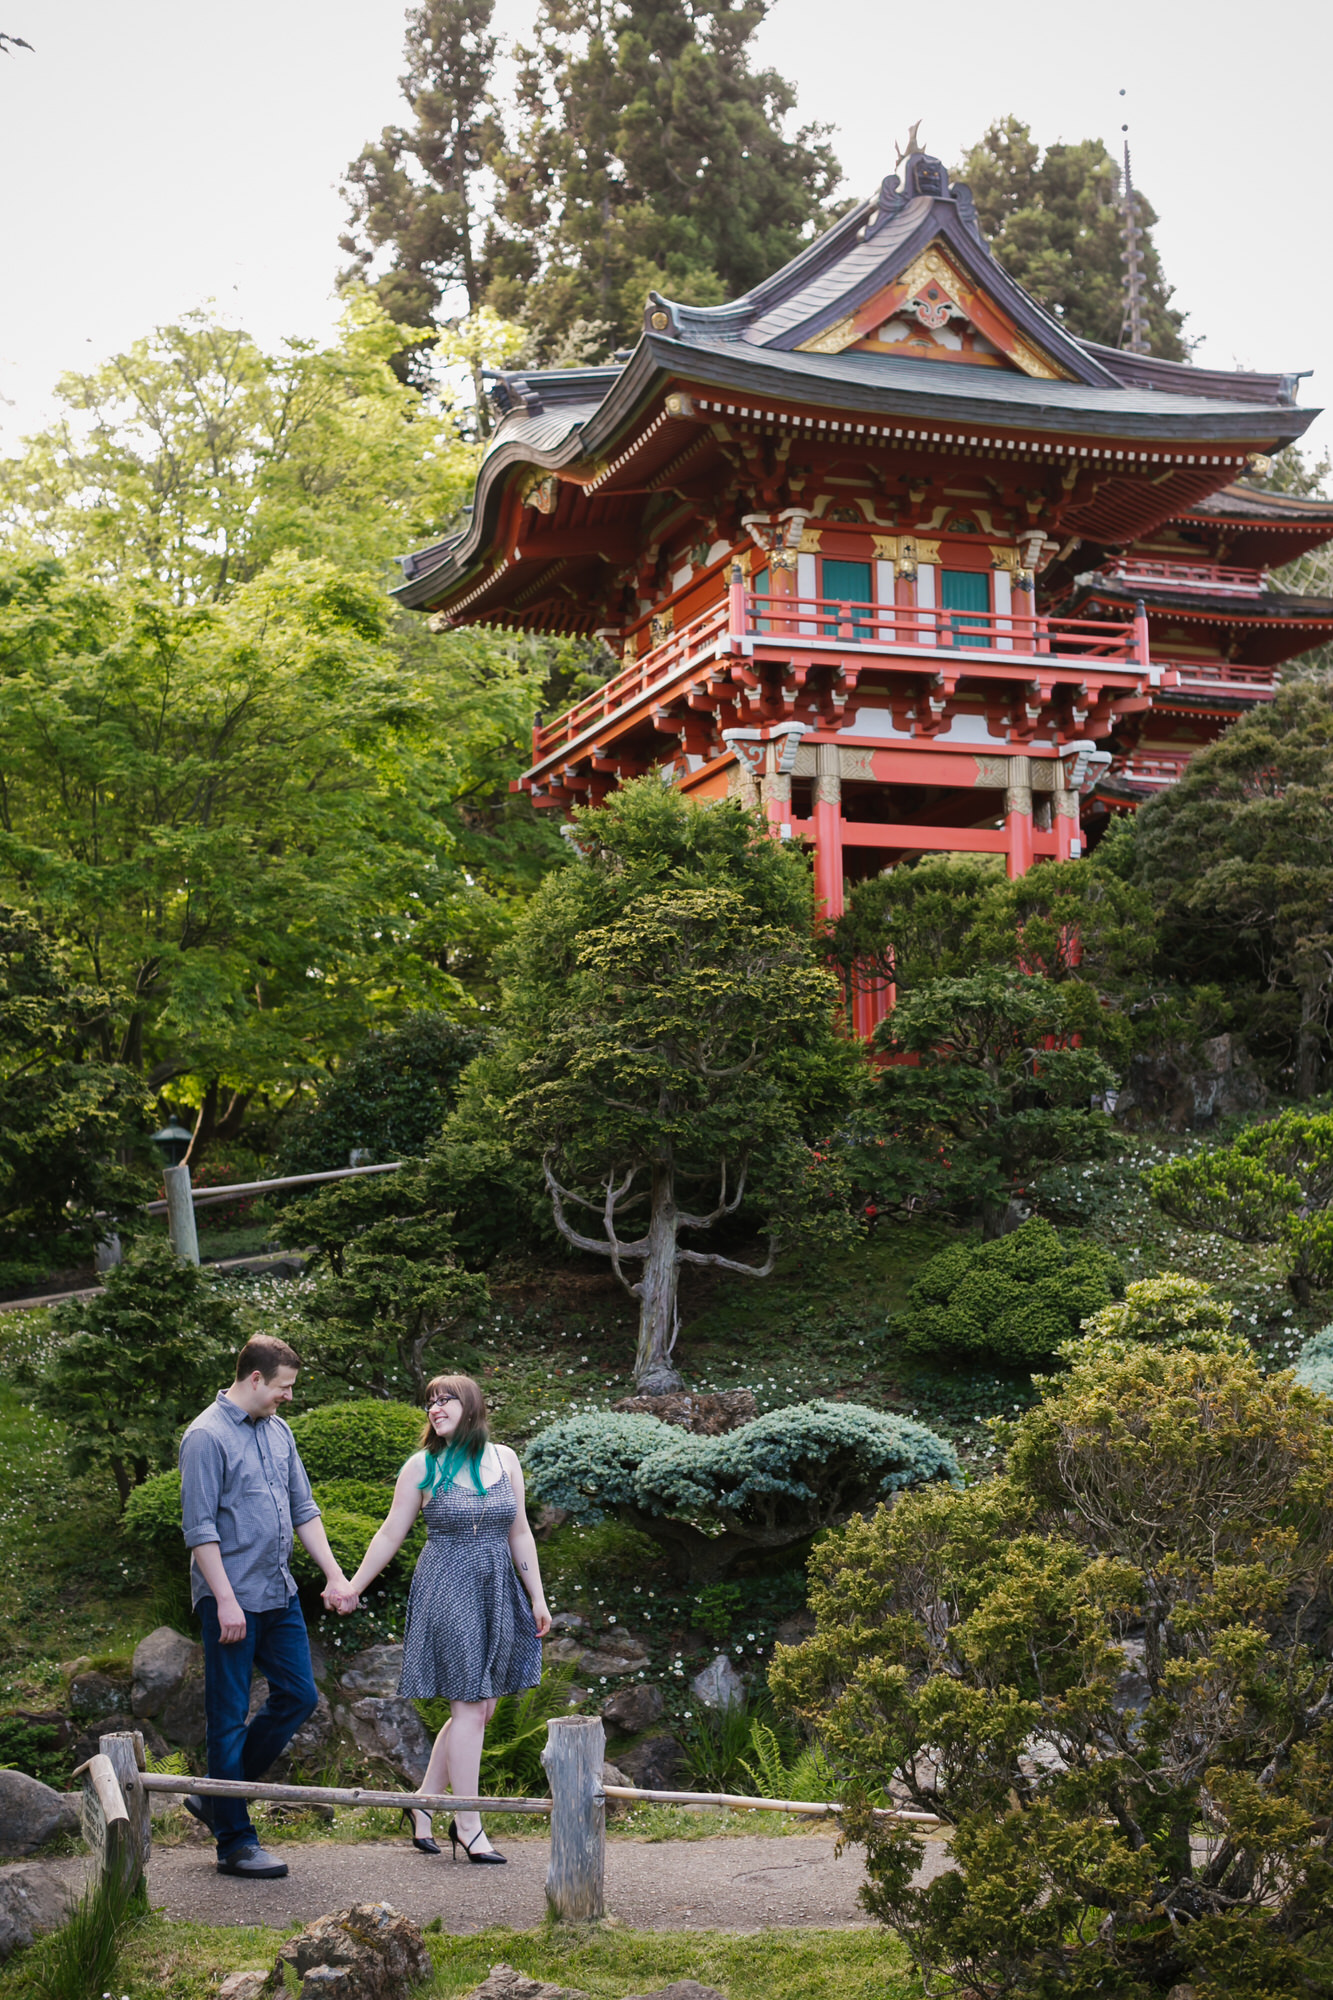 Engagement session at the Japanese Tea Garden in Golden Gate Park, San Francisco